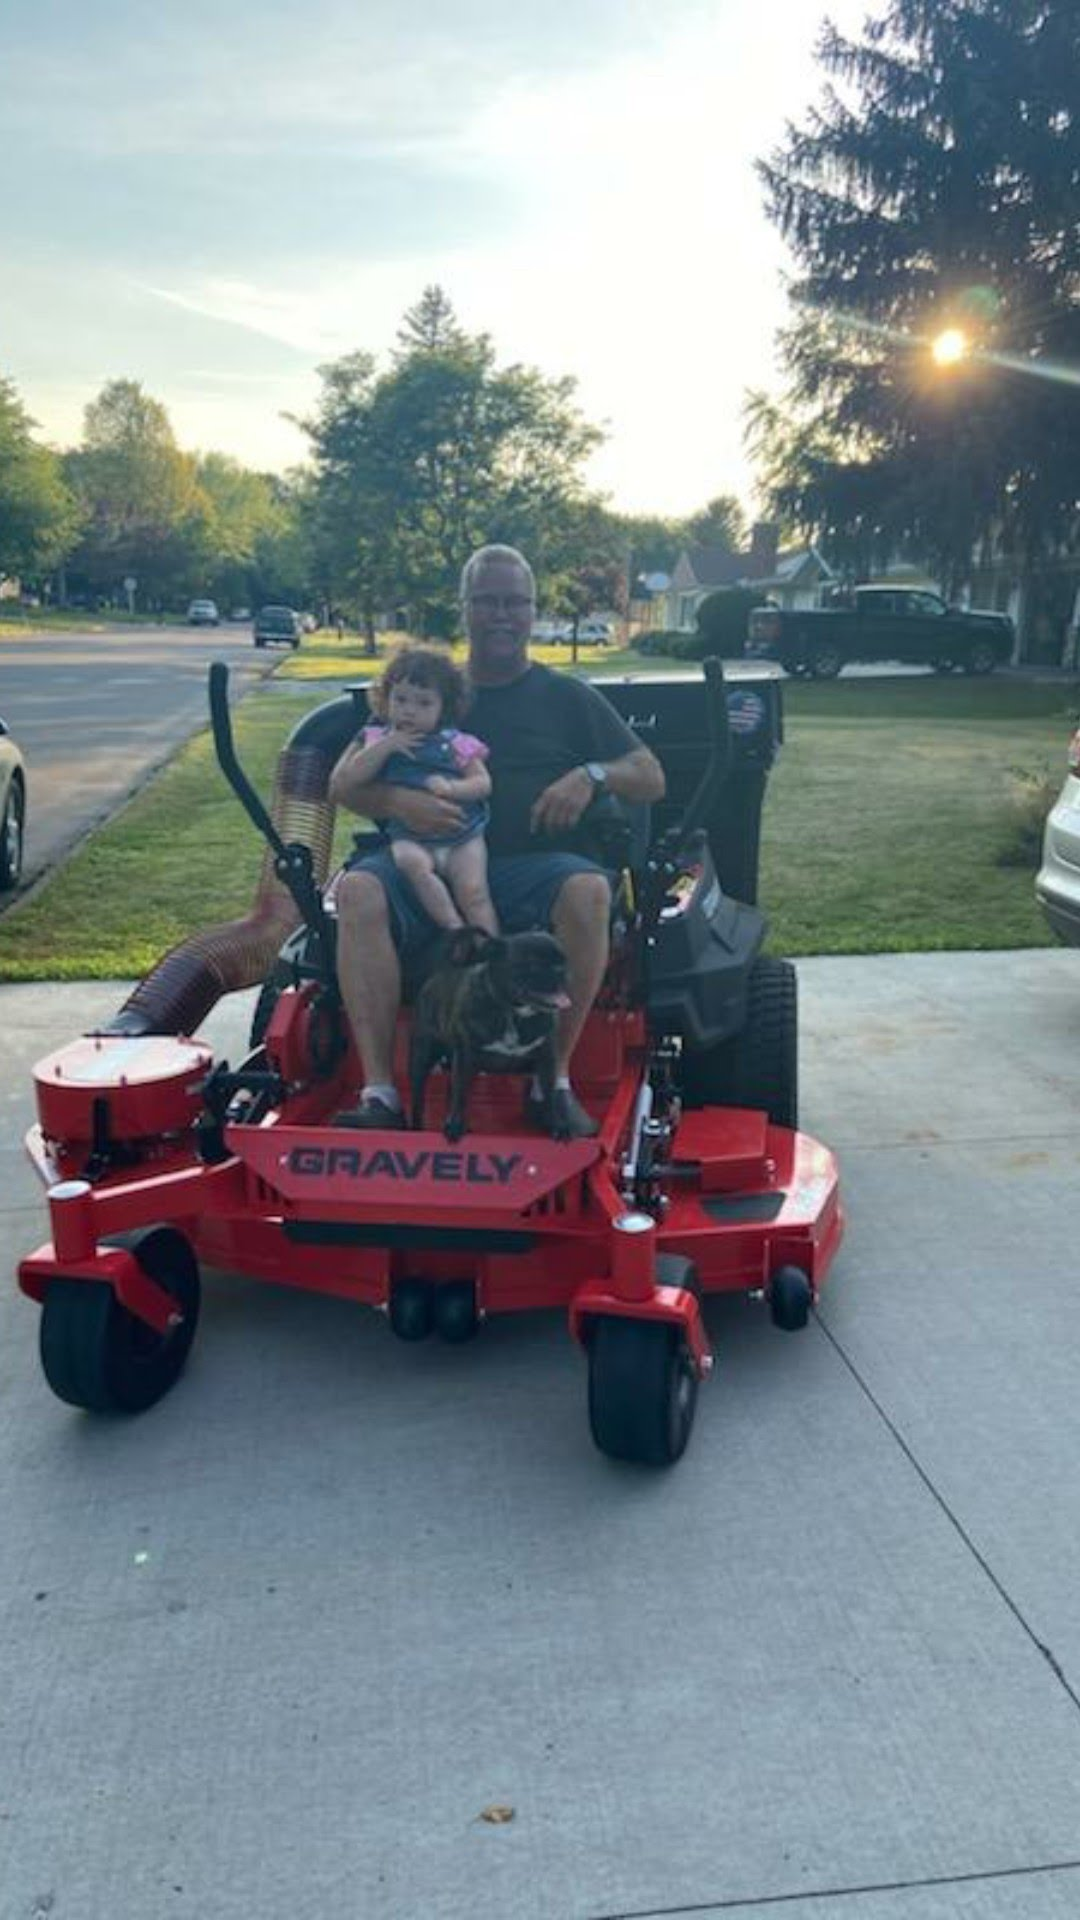 Image of Mark on lawnmower with his granddaughter.